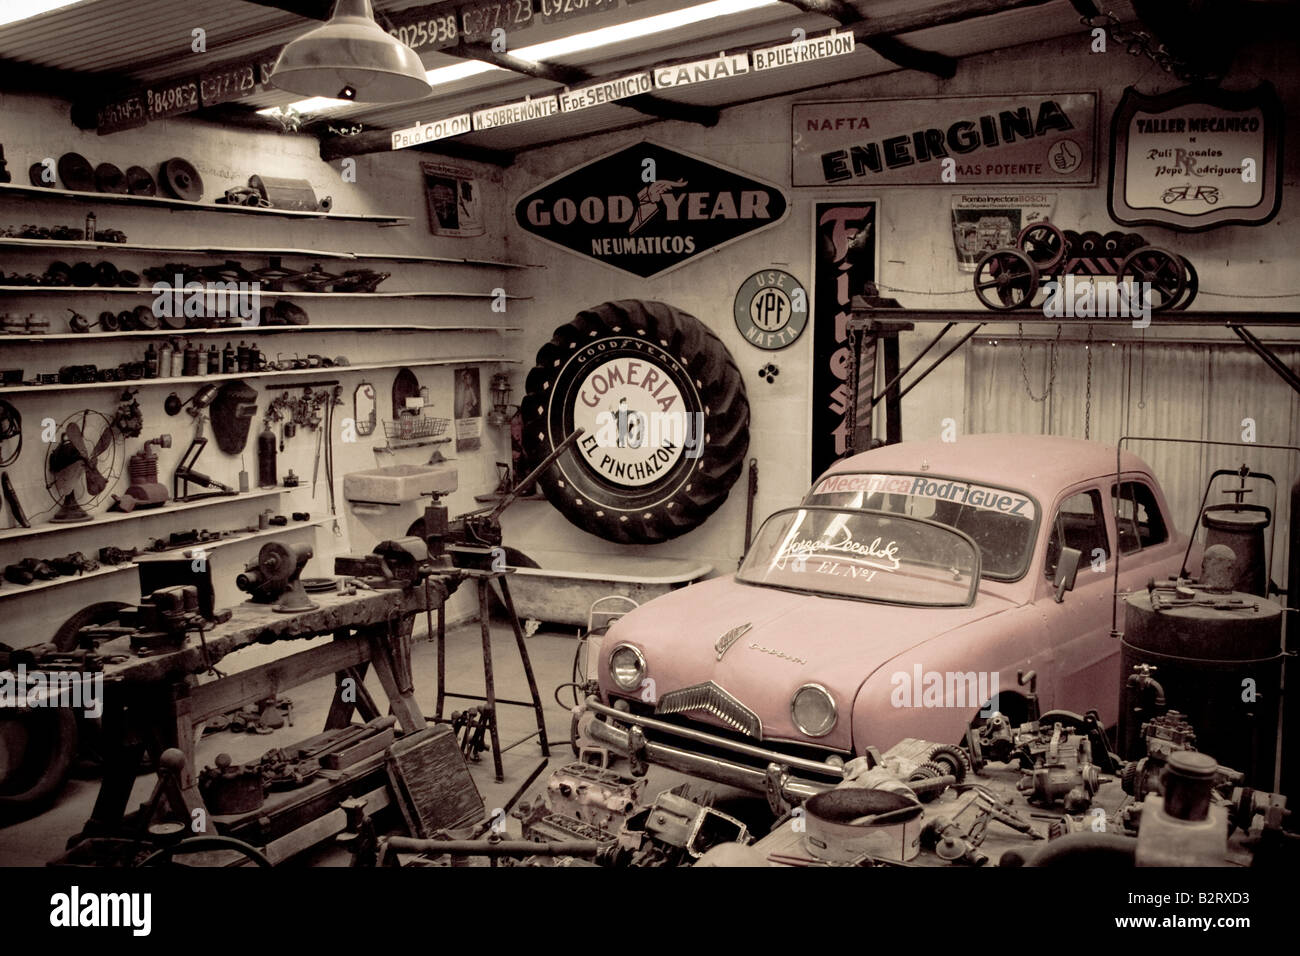 An old car mechanic repair shop in sepia tones exhibited in Rocsen ...